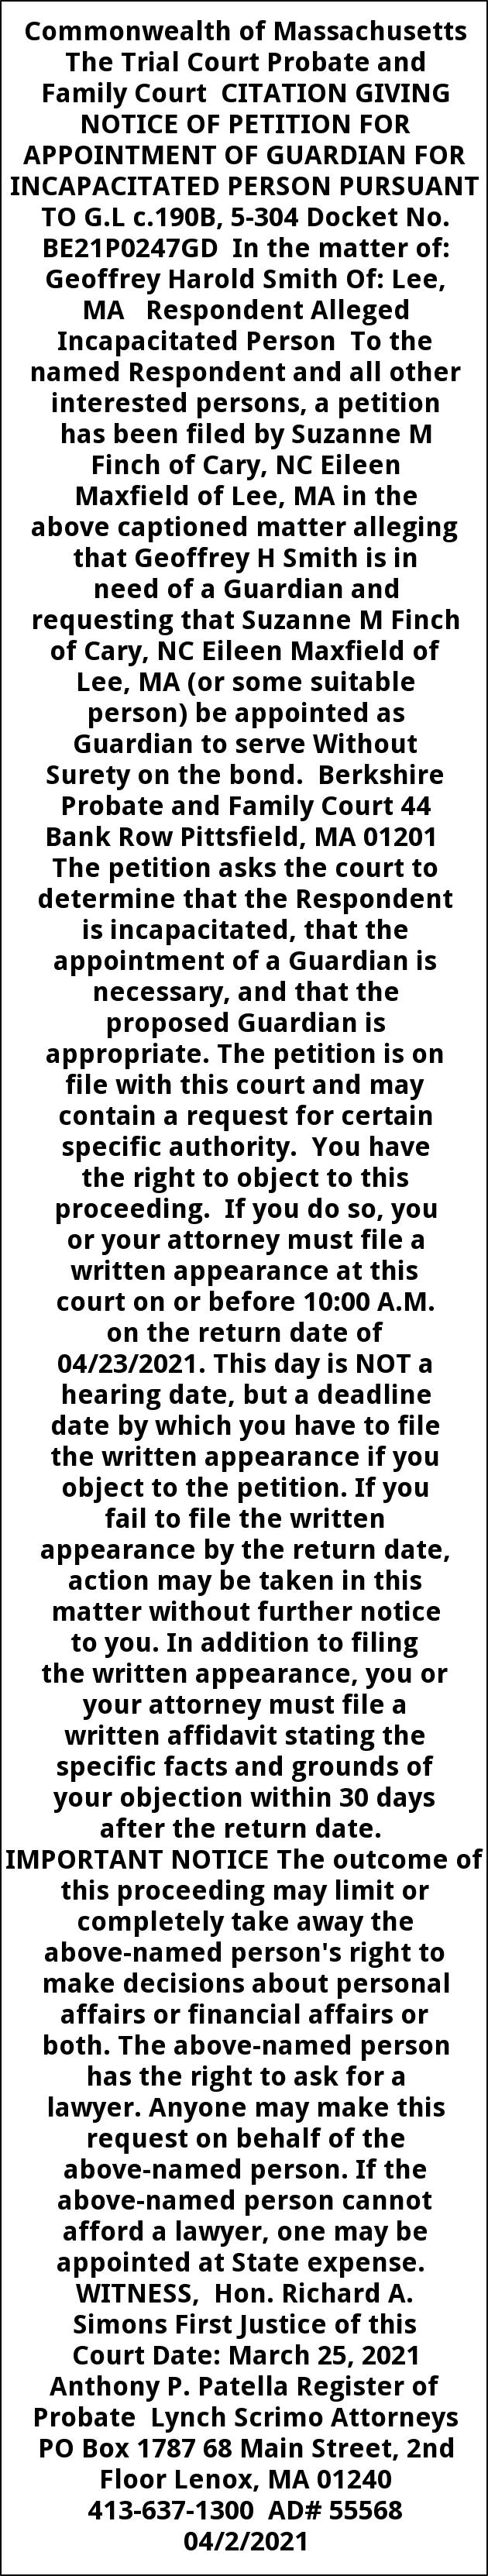 Citation Giving Notice Of Petition For Appointment Of Guardian